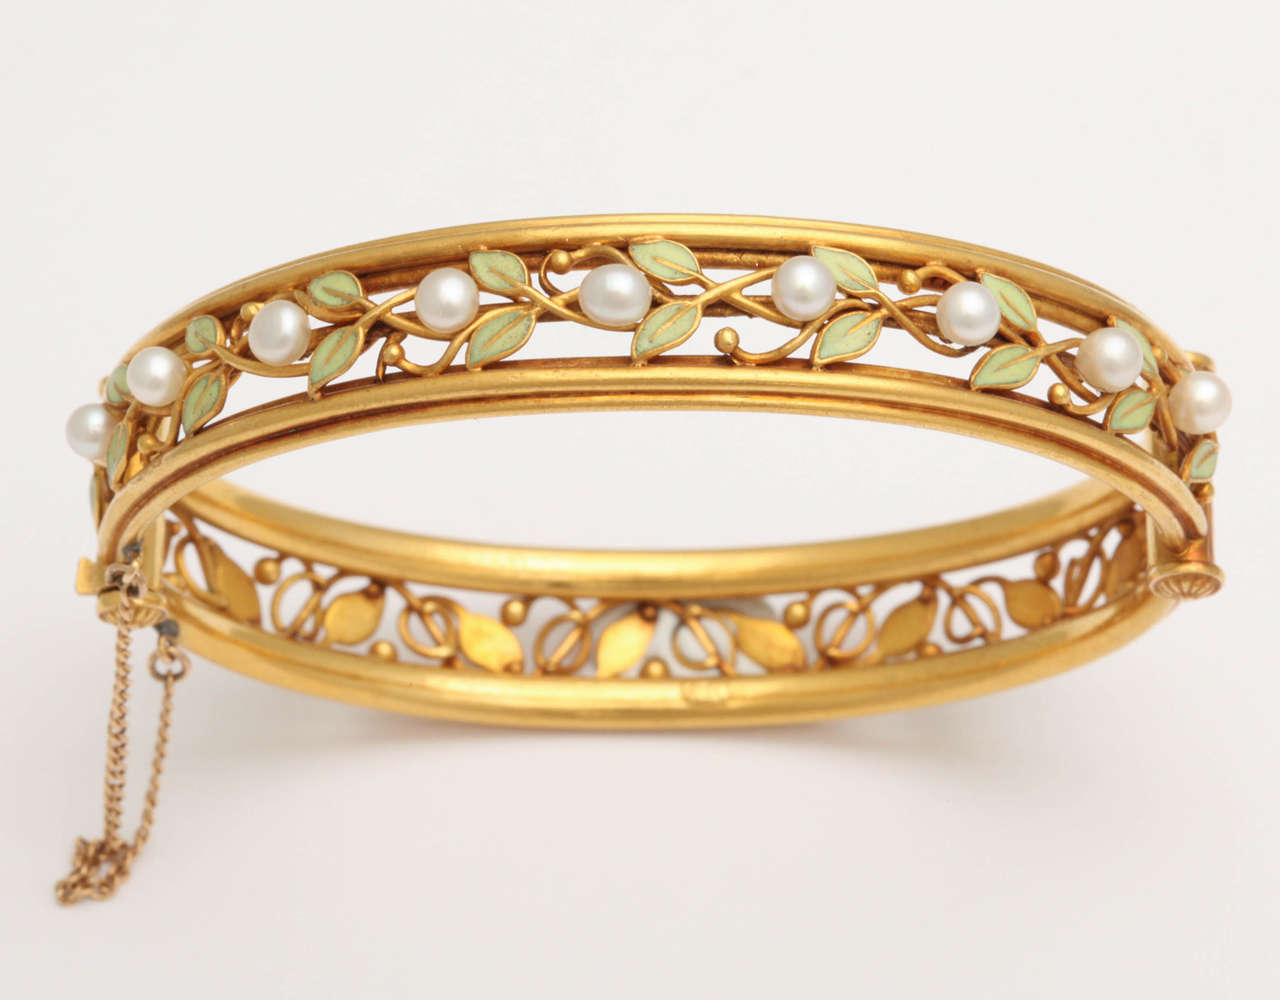 Art Nouveau Arts And Crafts Enamel Pearl Gold Bangle Bracelet For